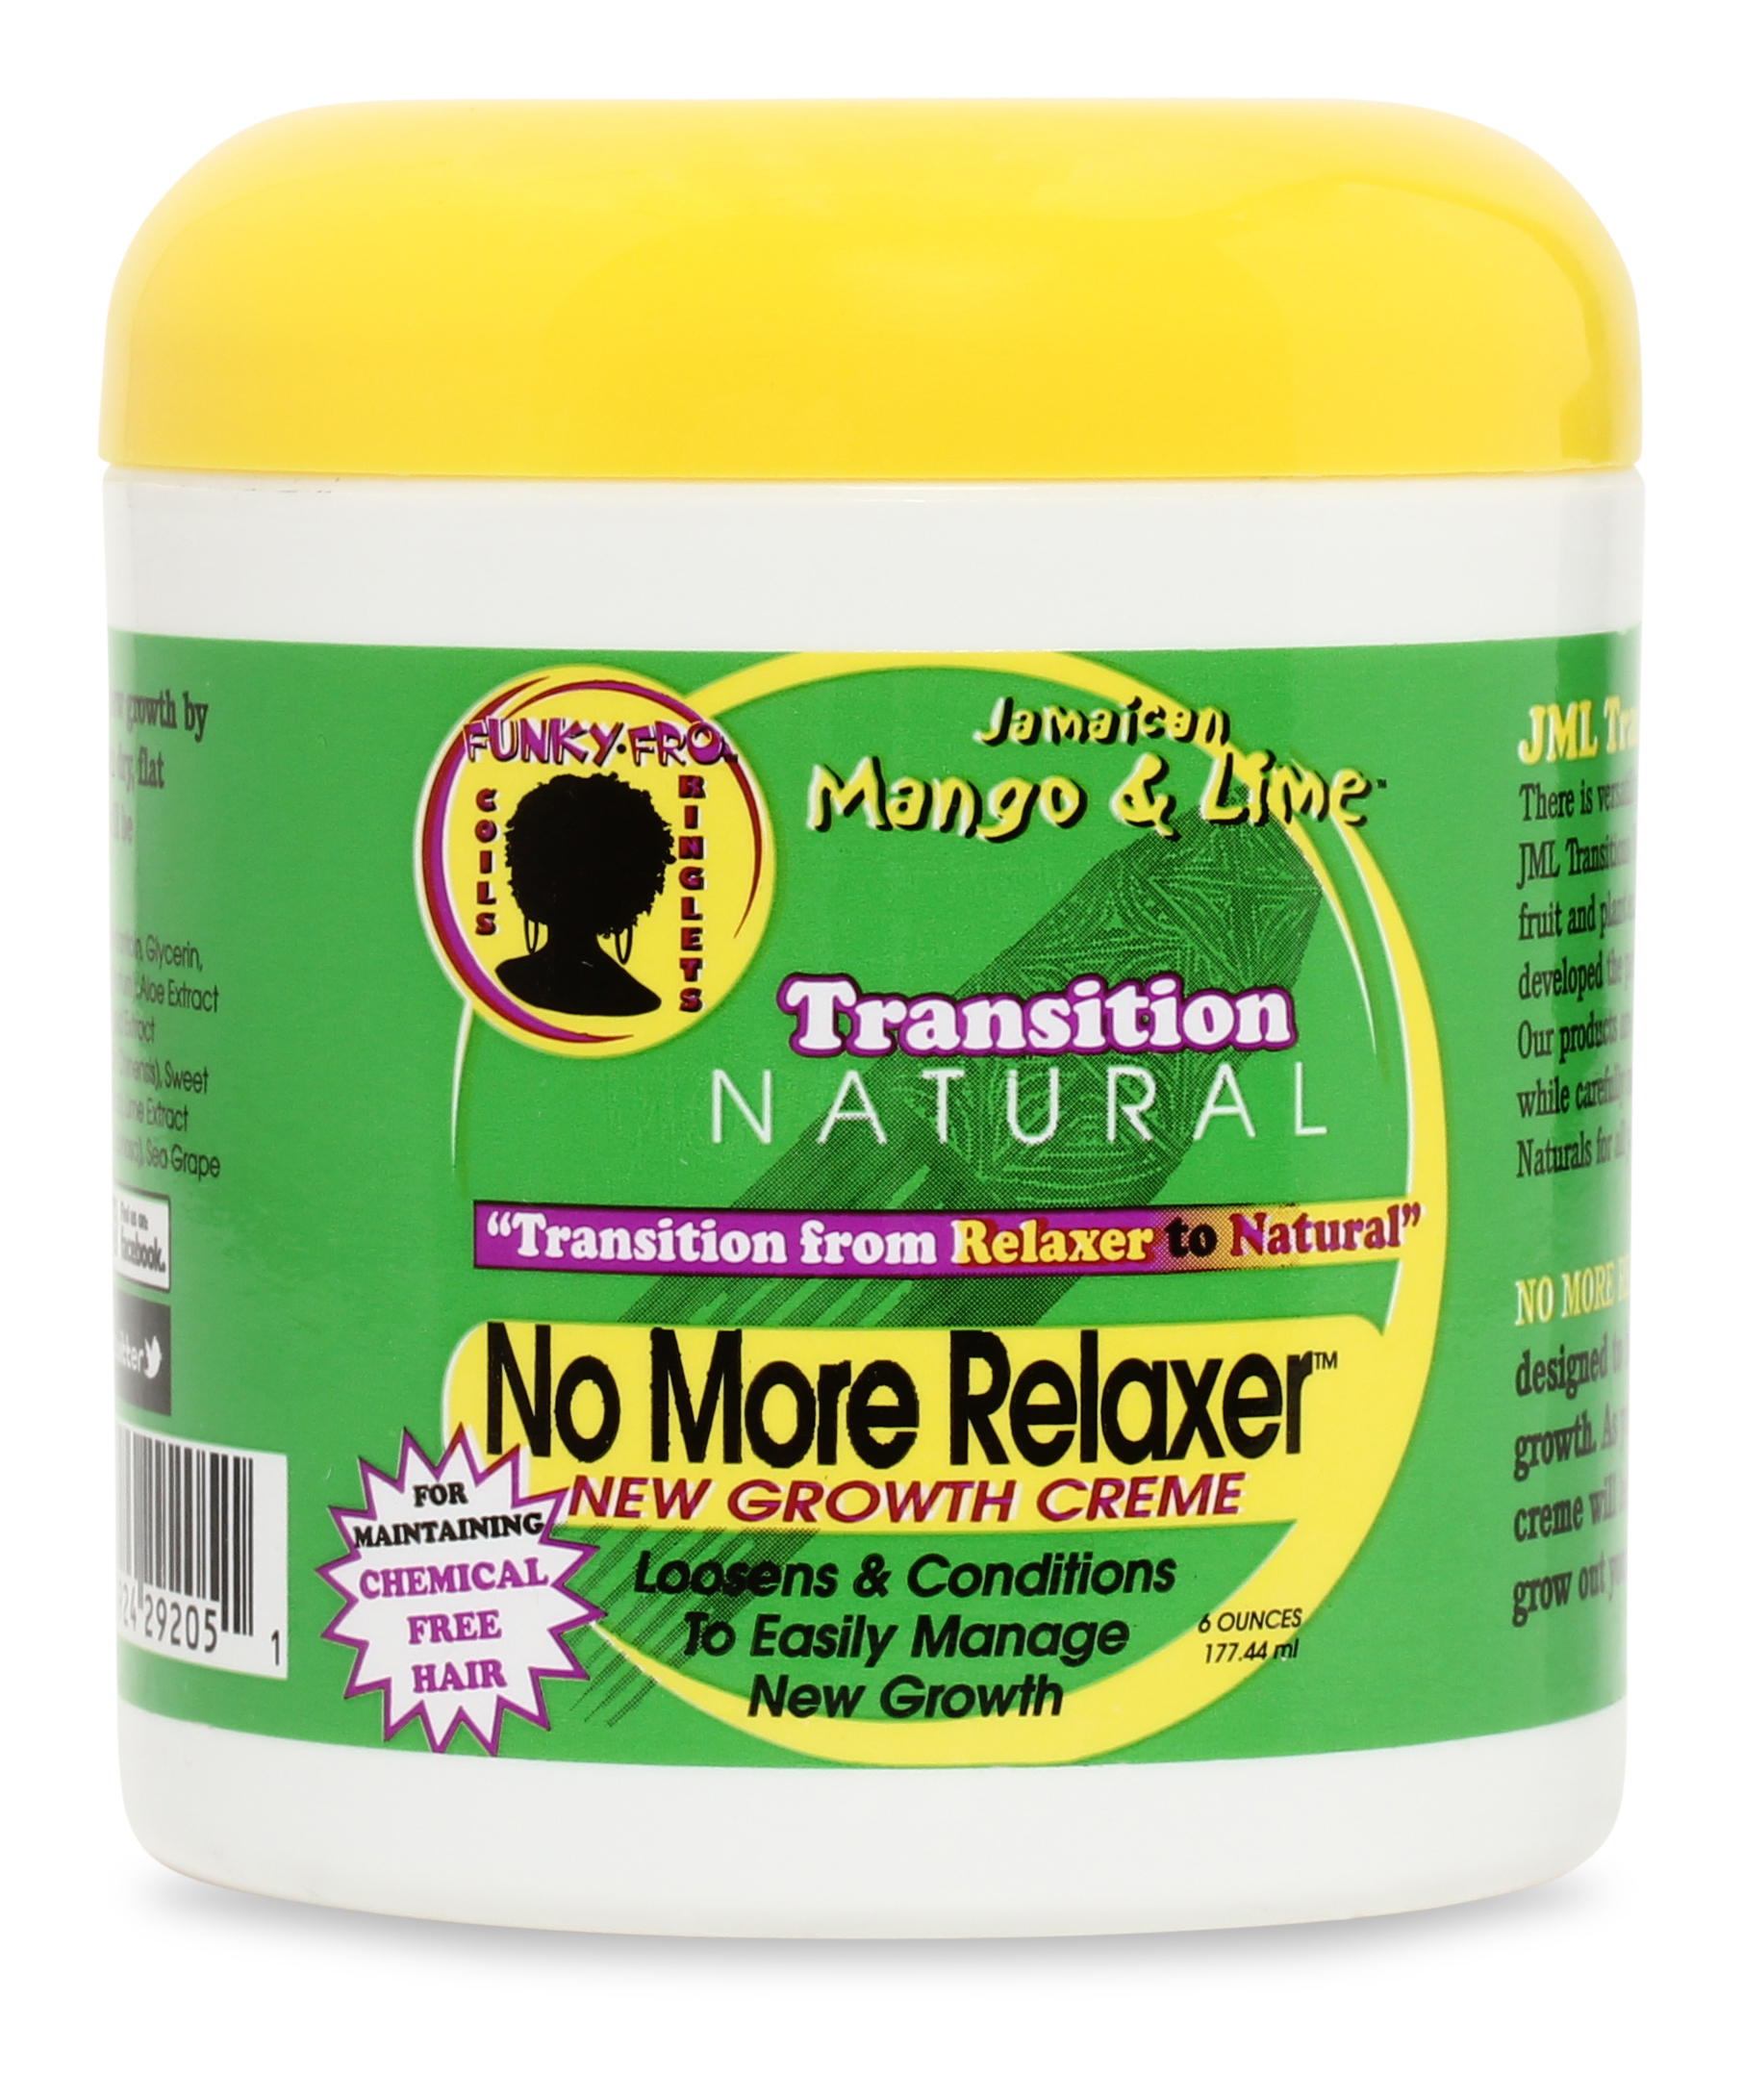 NO MORE RELAXER DAILY NEW GROWTH CRÈME